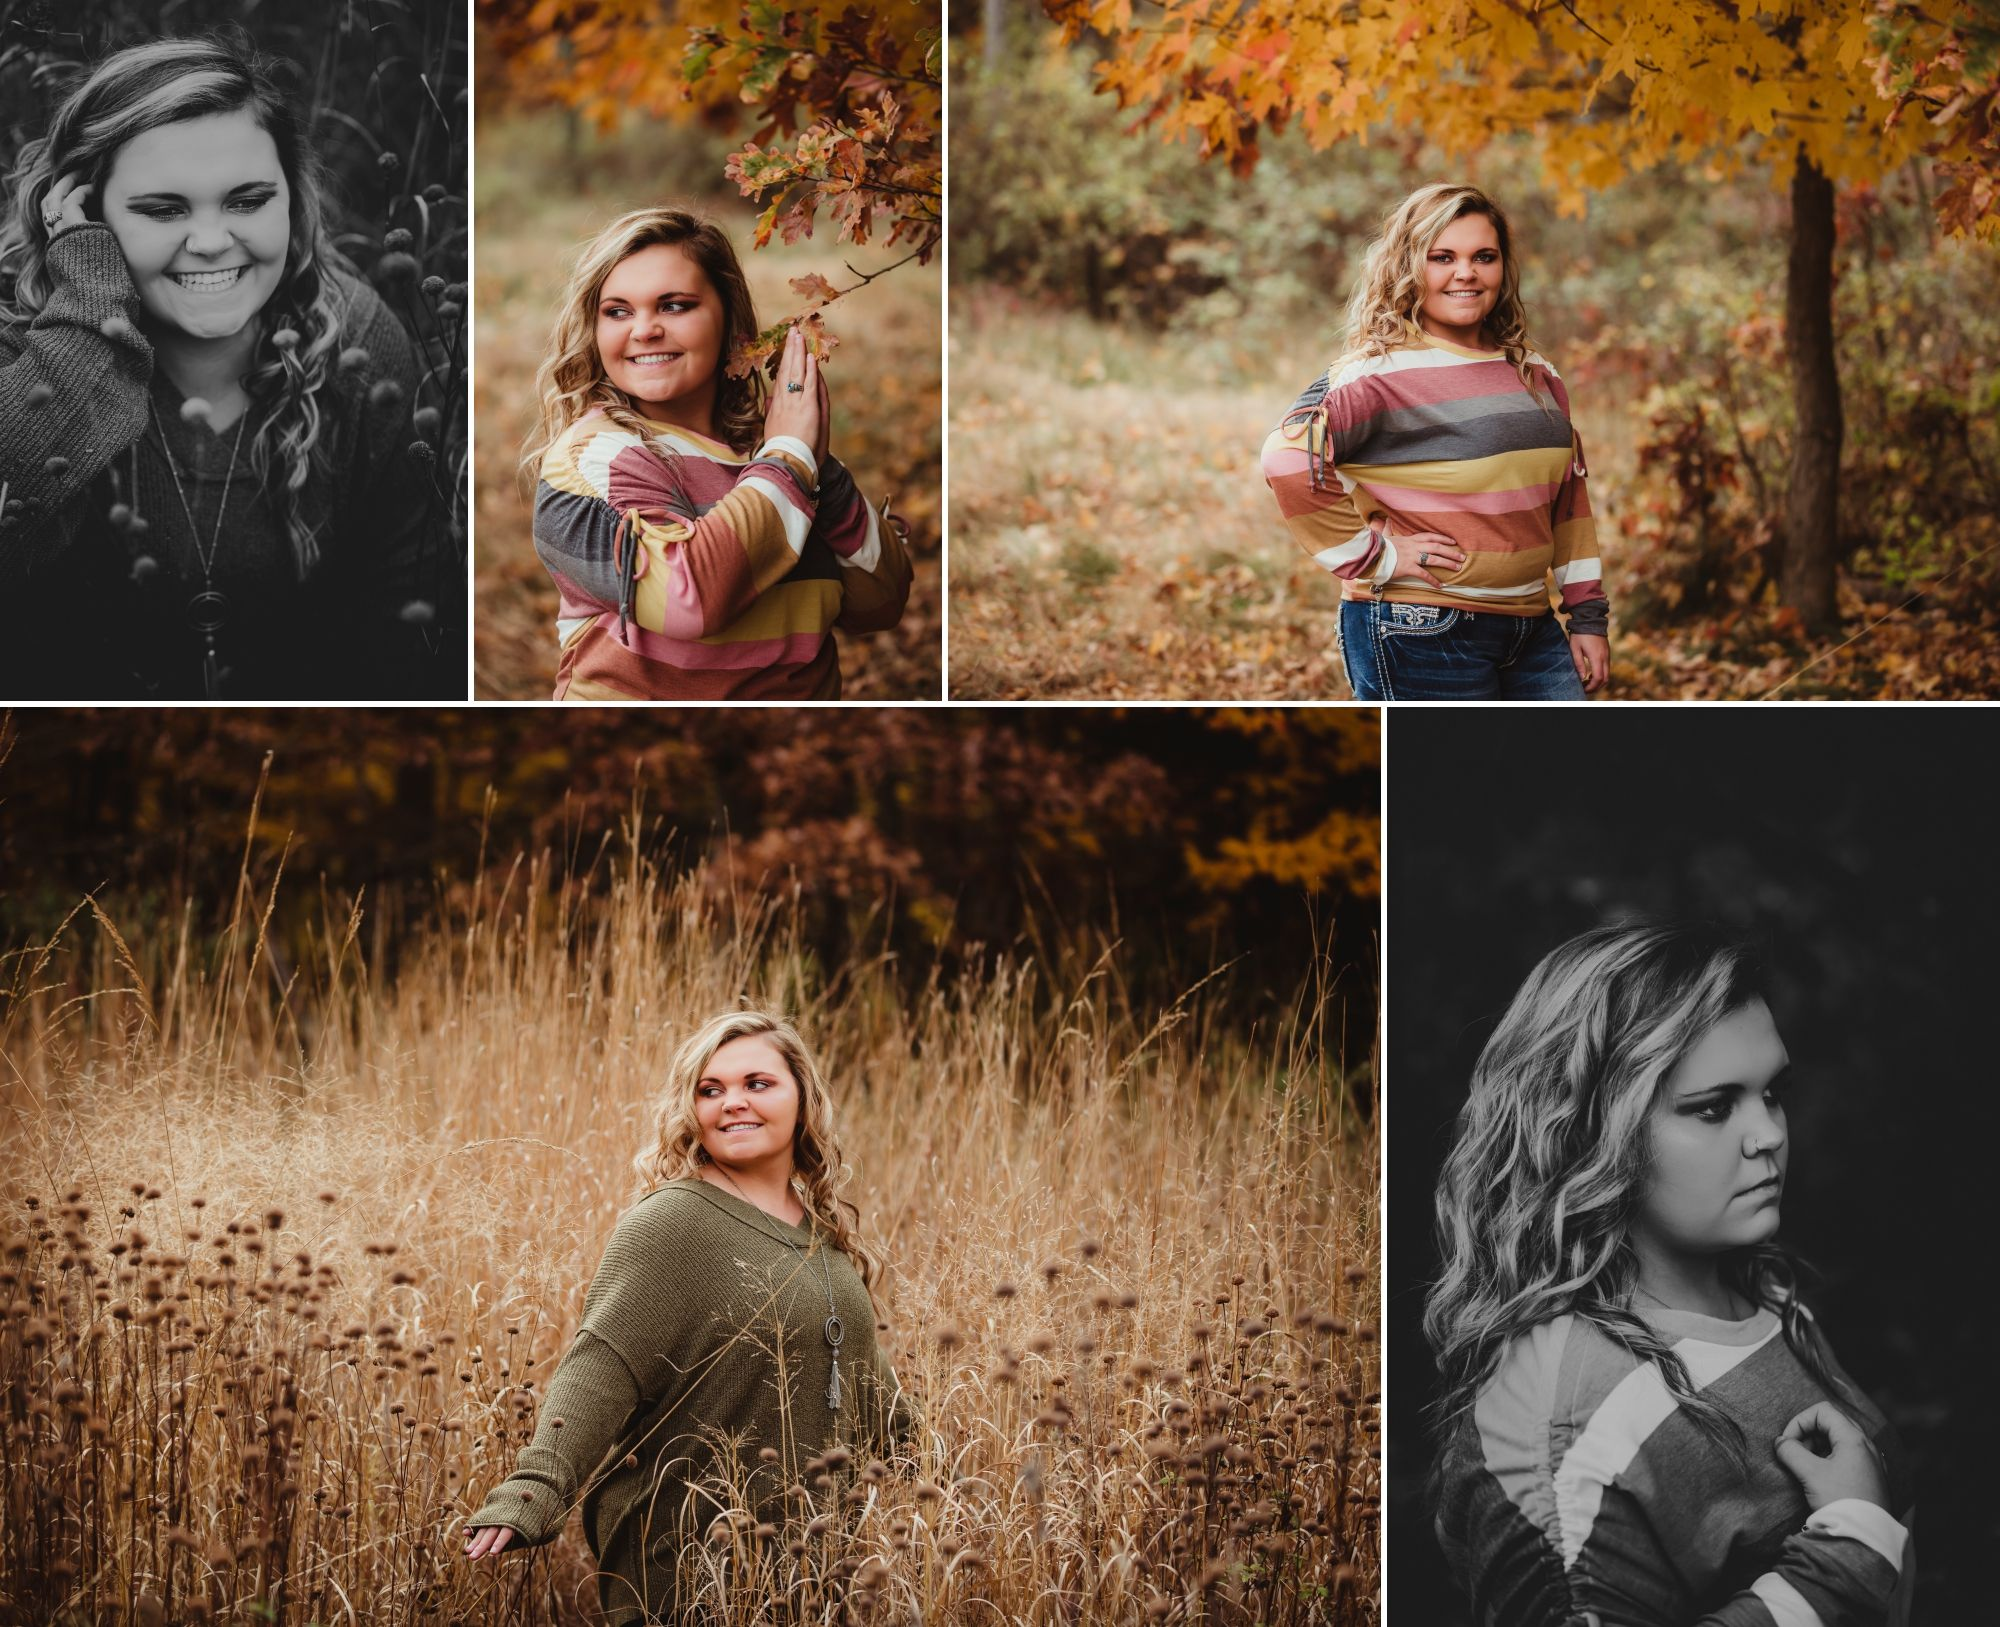 High school senior girl near fall foliage and in a brown field.